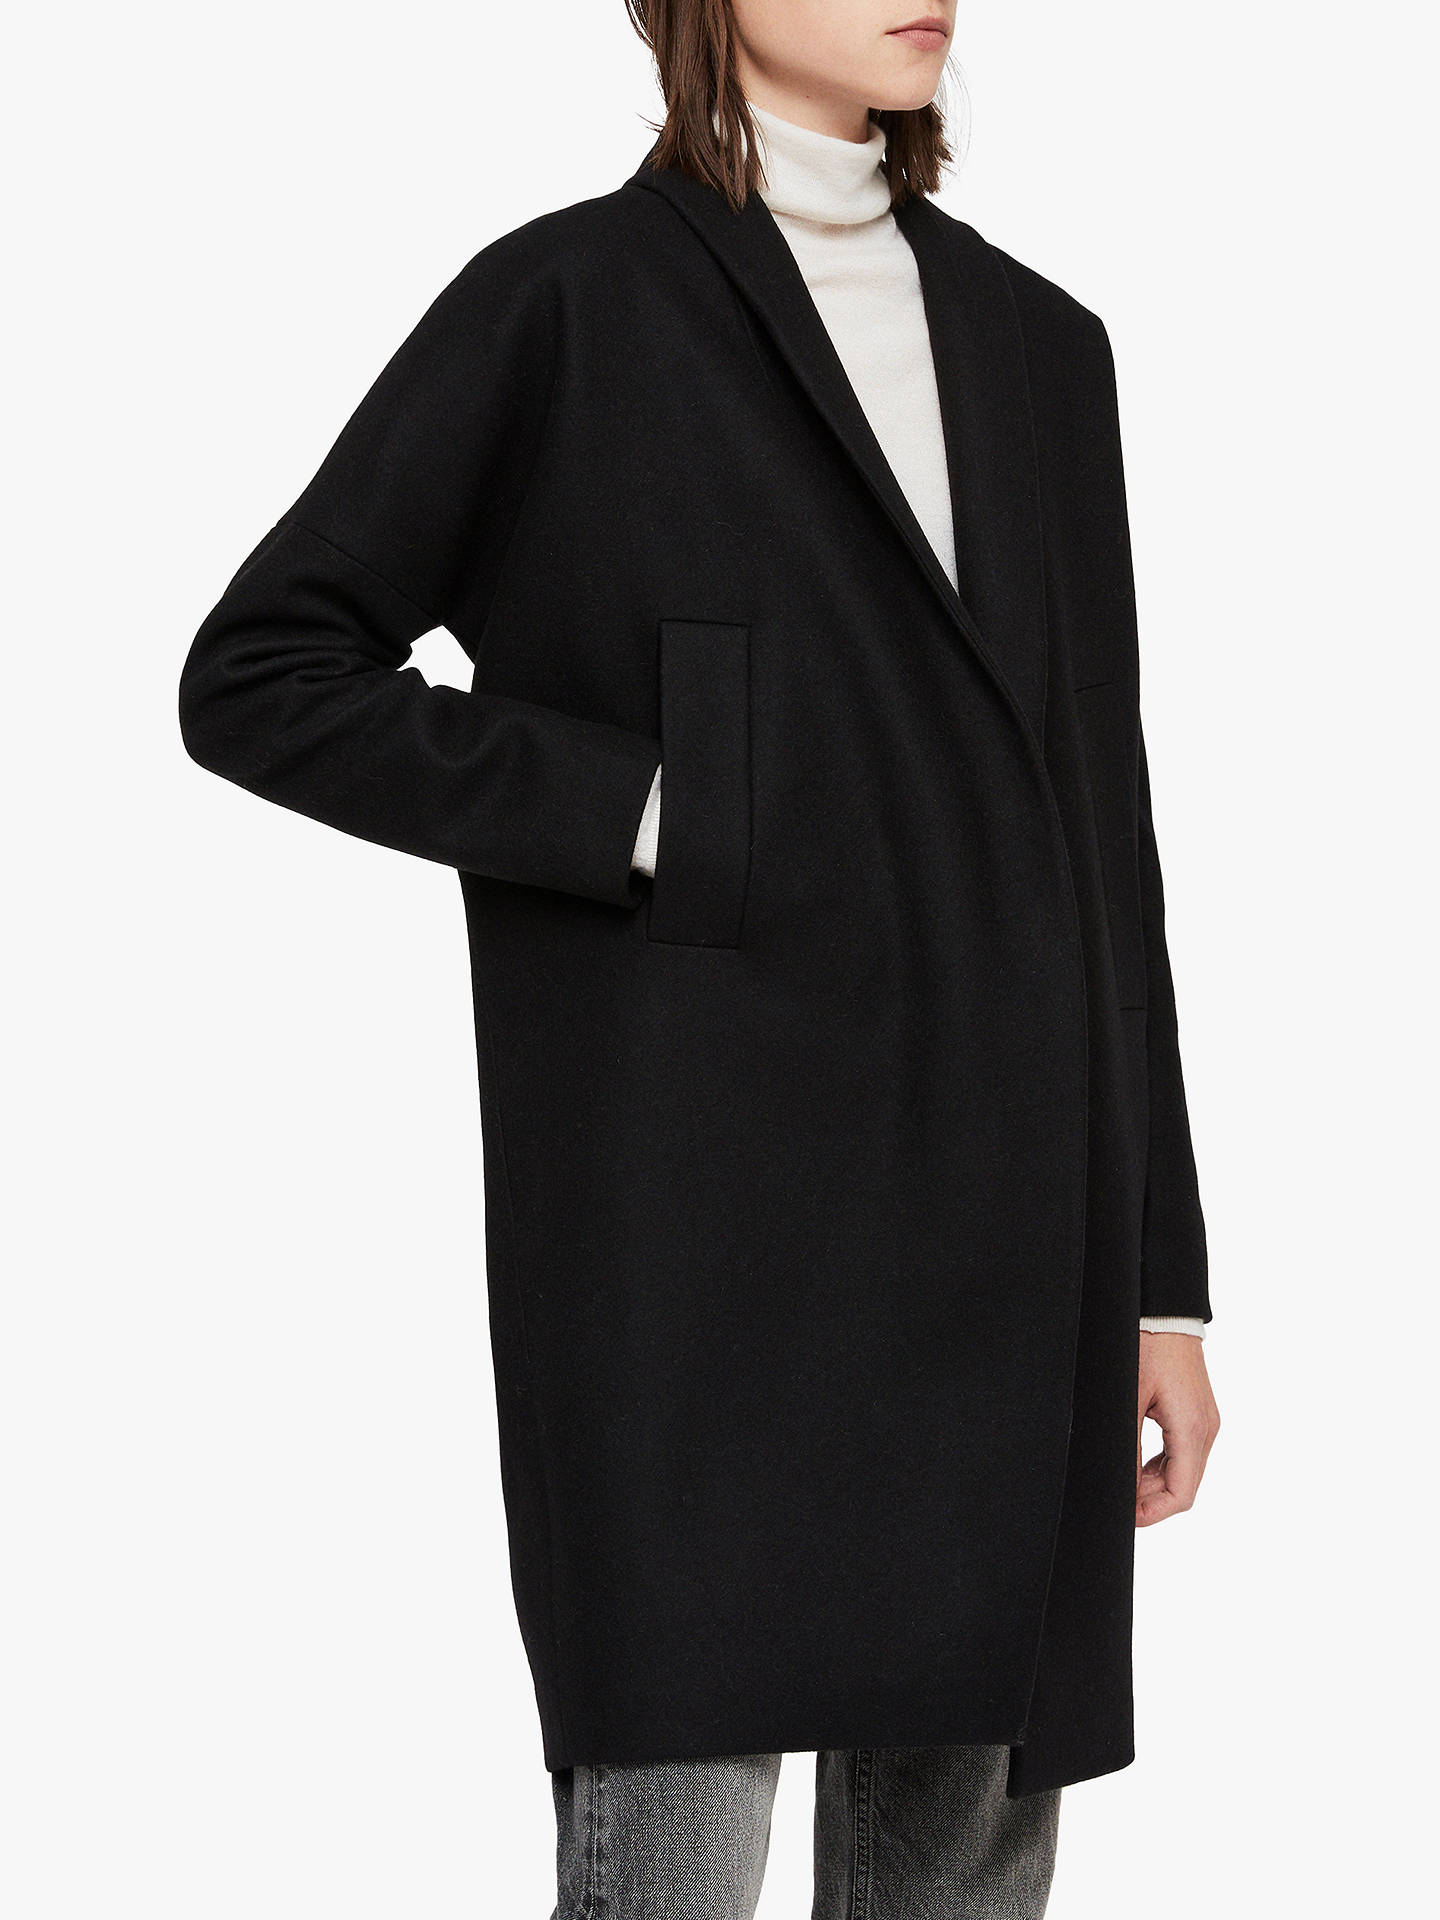 All Saints Layton Coat, Black by All Saints